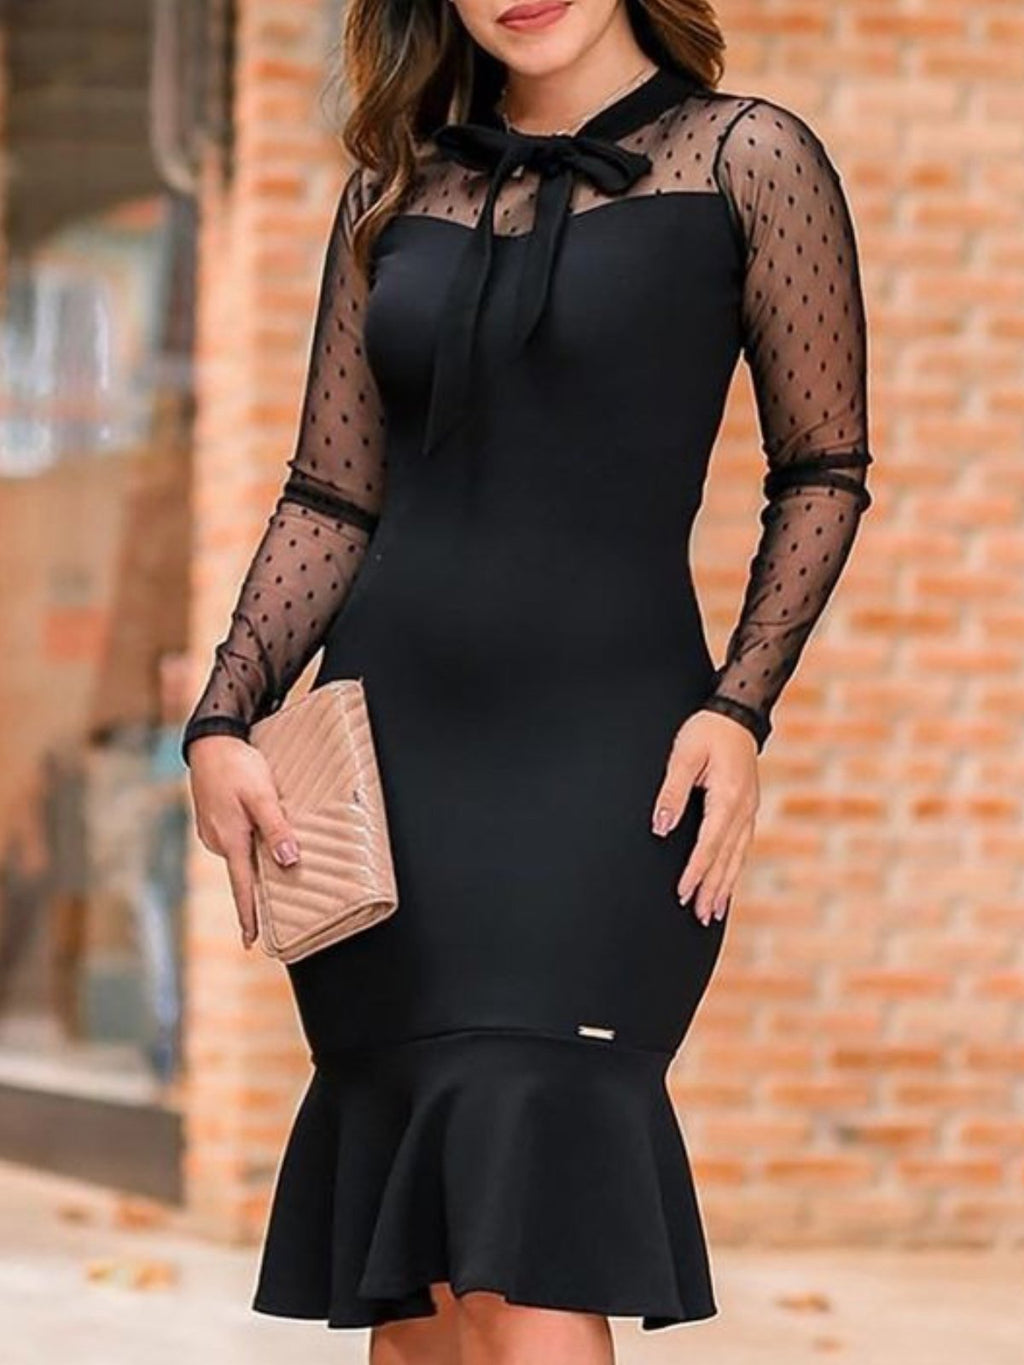 Lace Black Elegant Long Sleeve Plus Size Bodycon Day Dress Rikkishop